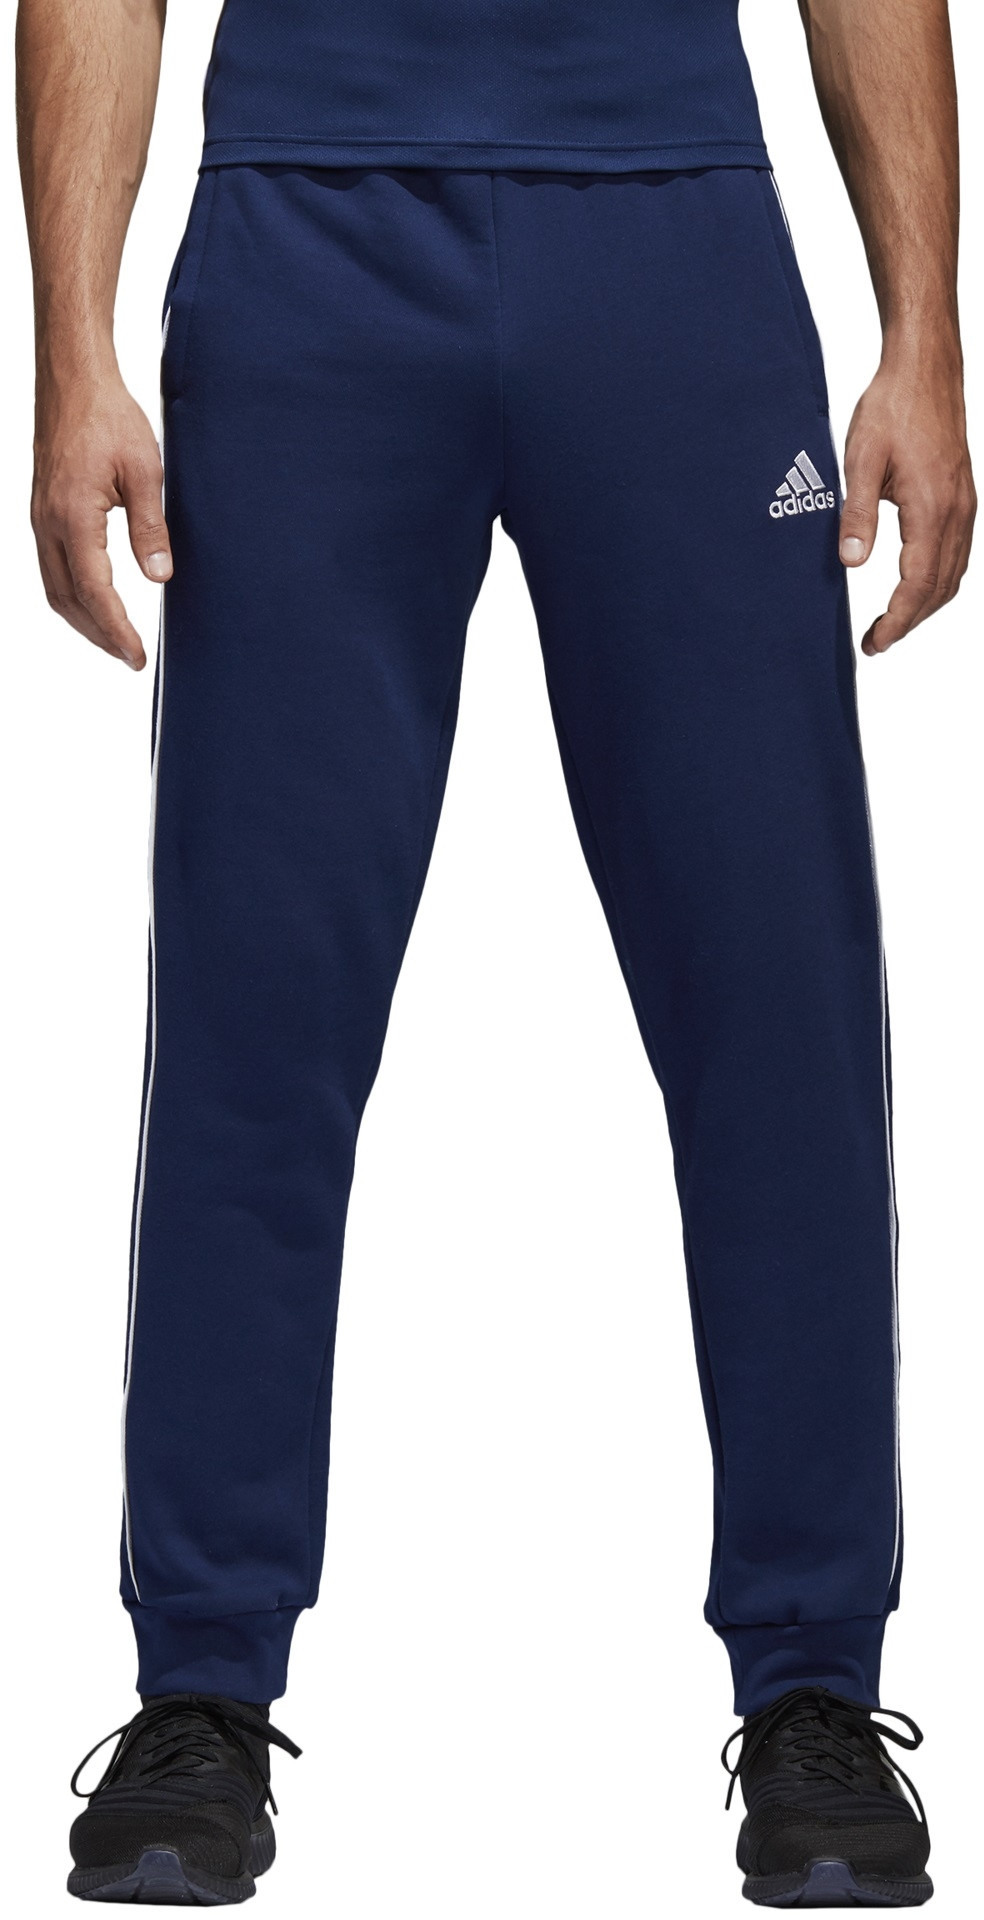 Moral Acusador arroz  Adidas Core 18 Sw Pants Dark Blue | Sportsman24